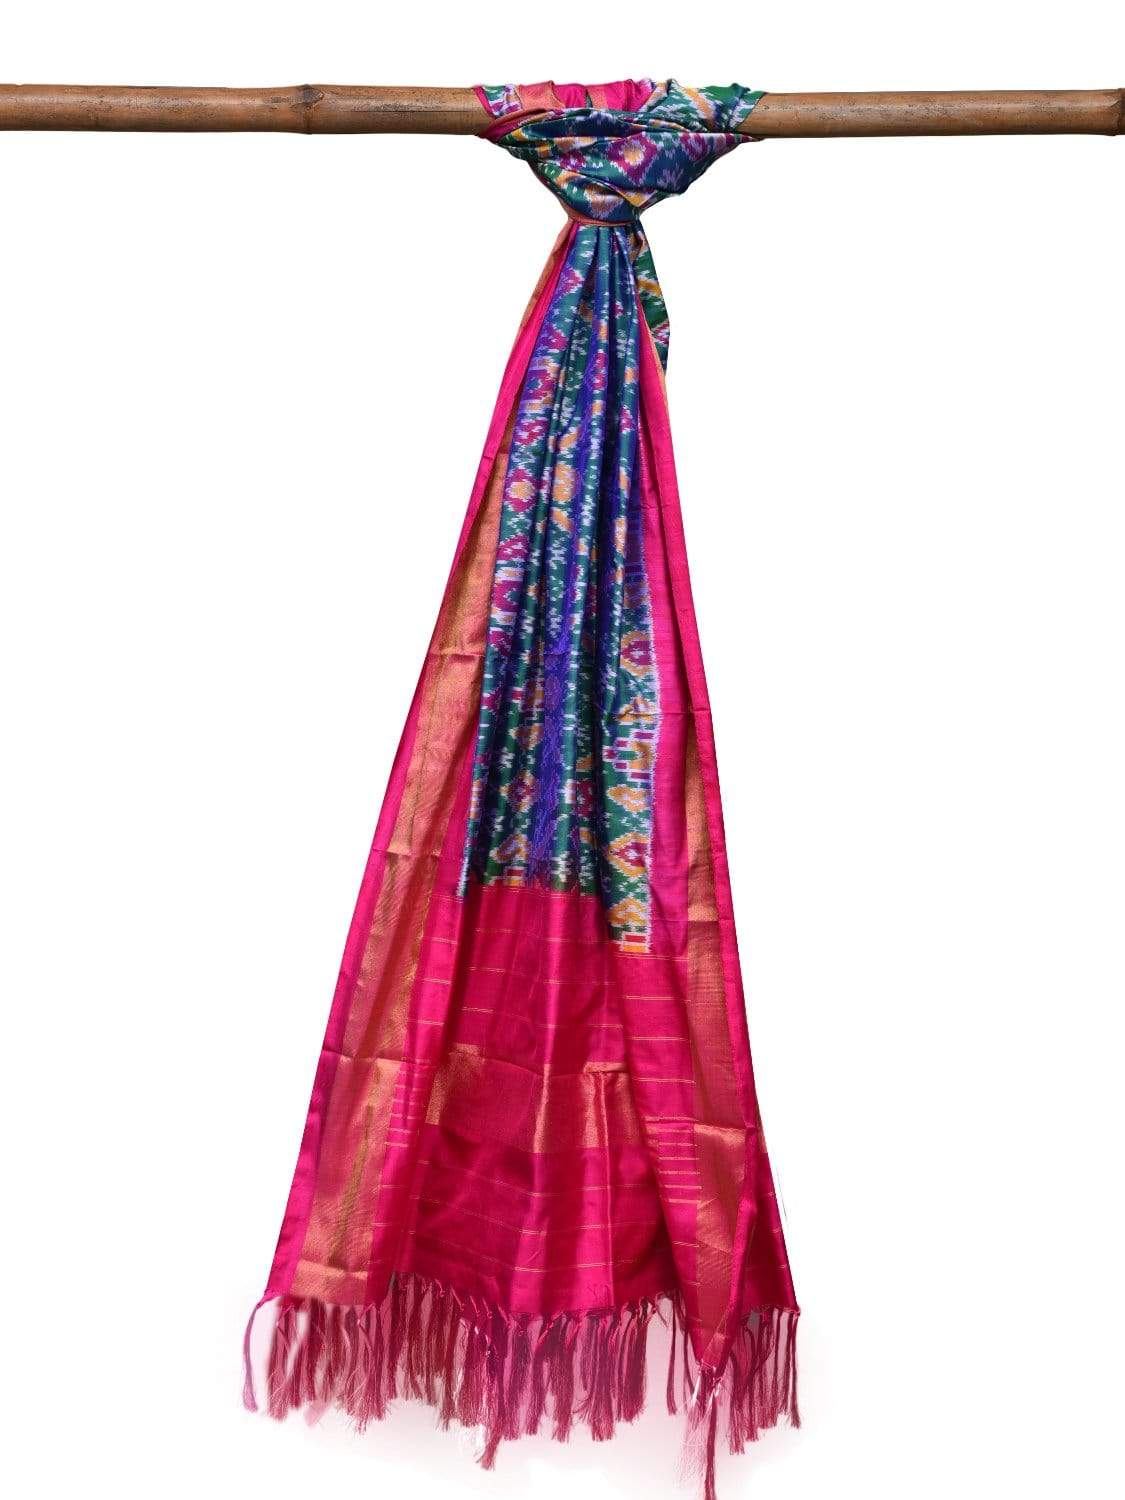 Green and Pink Pochampally Ikat Silk Handloom Dupatta with All Over Design ds2036